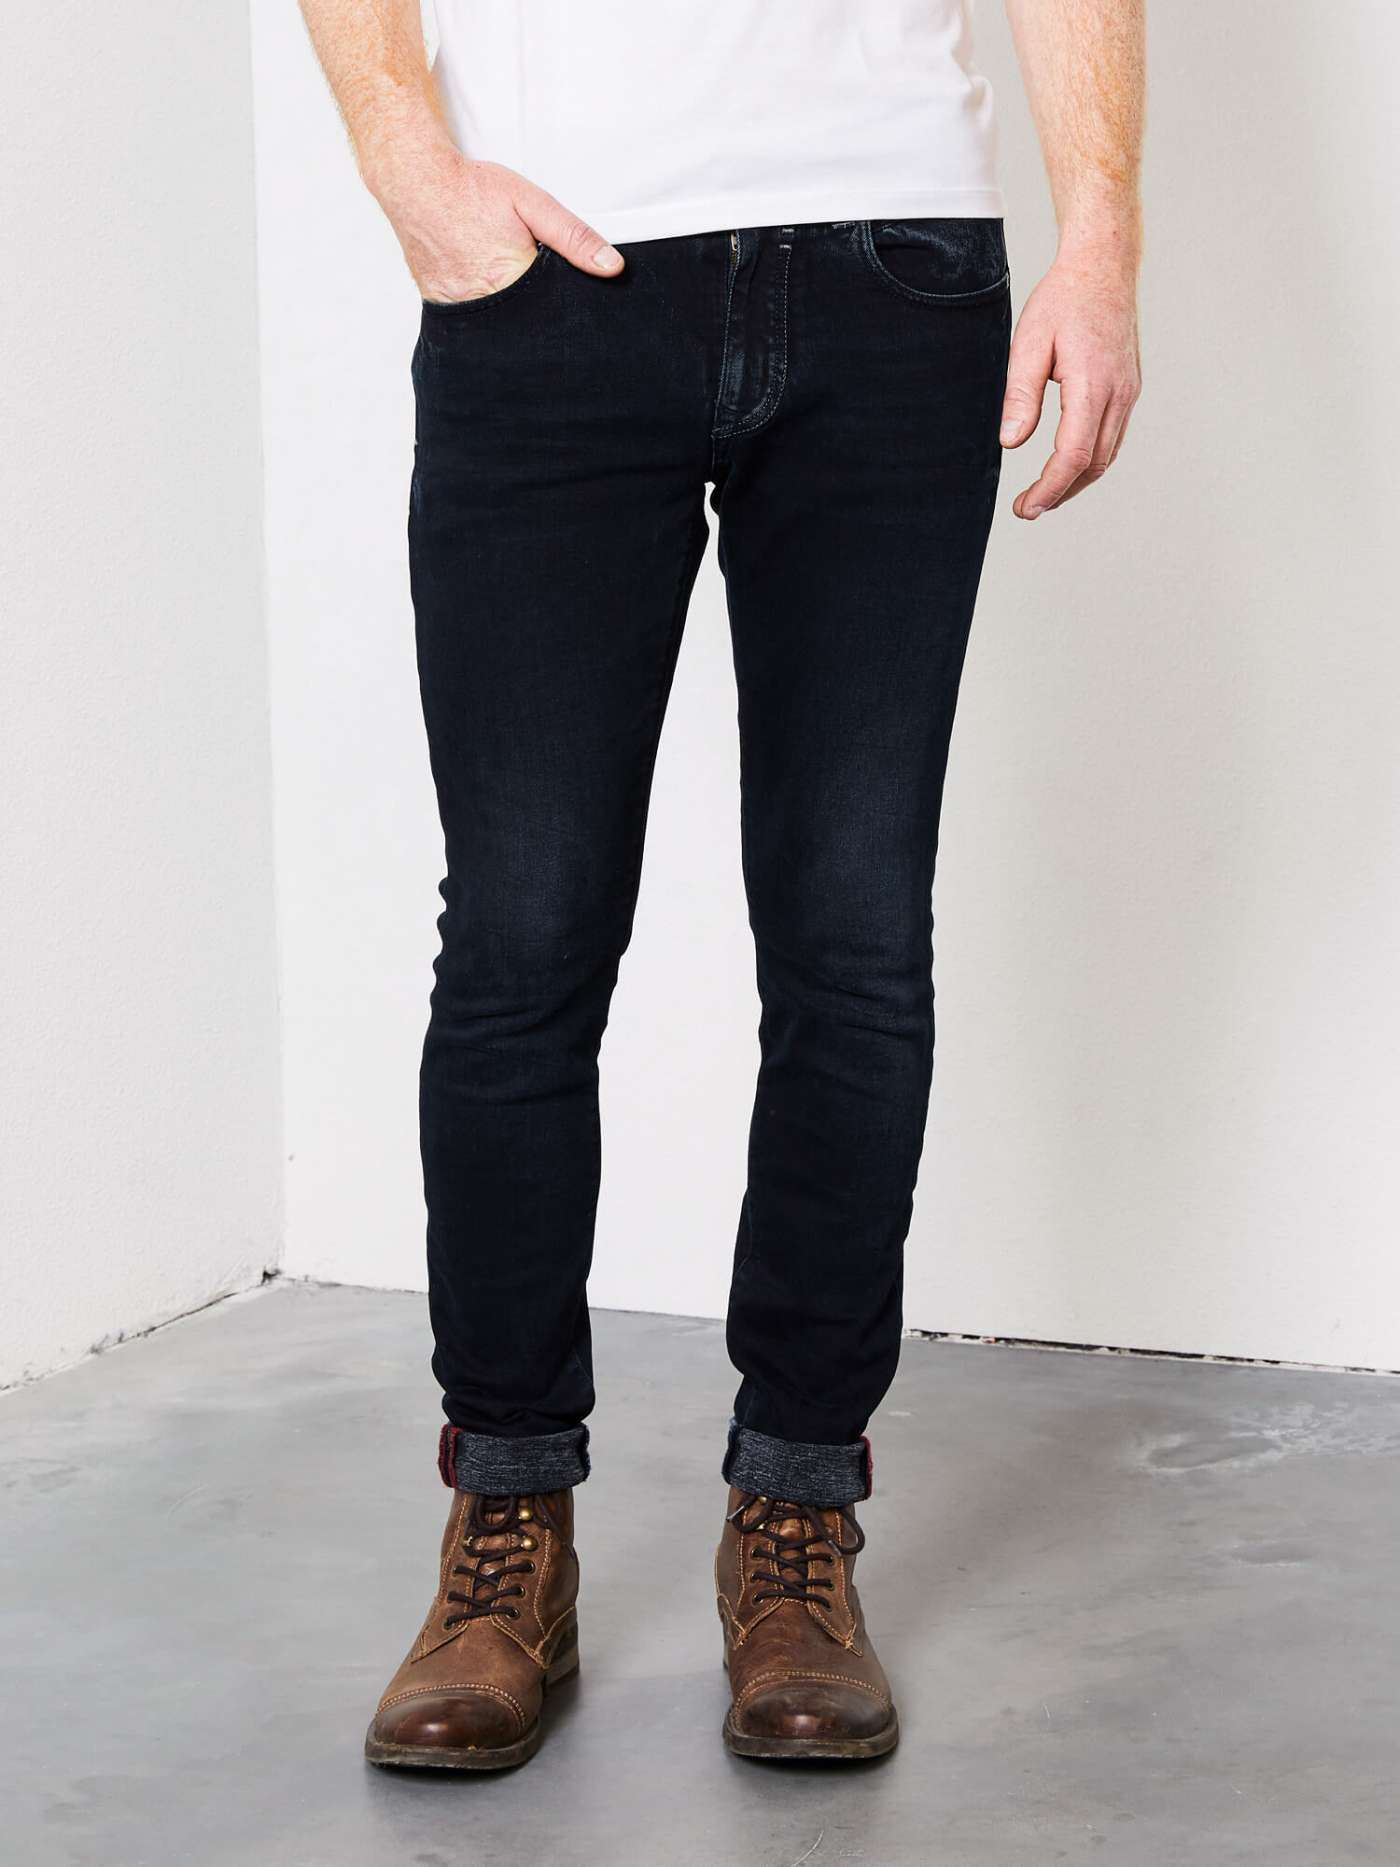 Sherborn Jeans